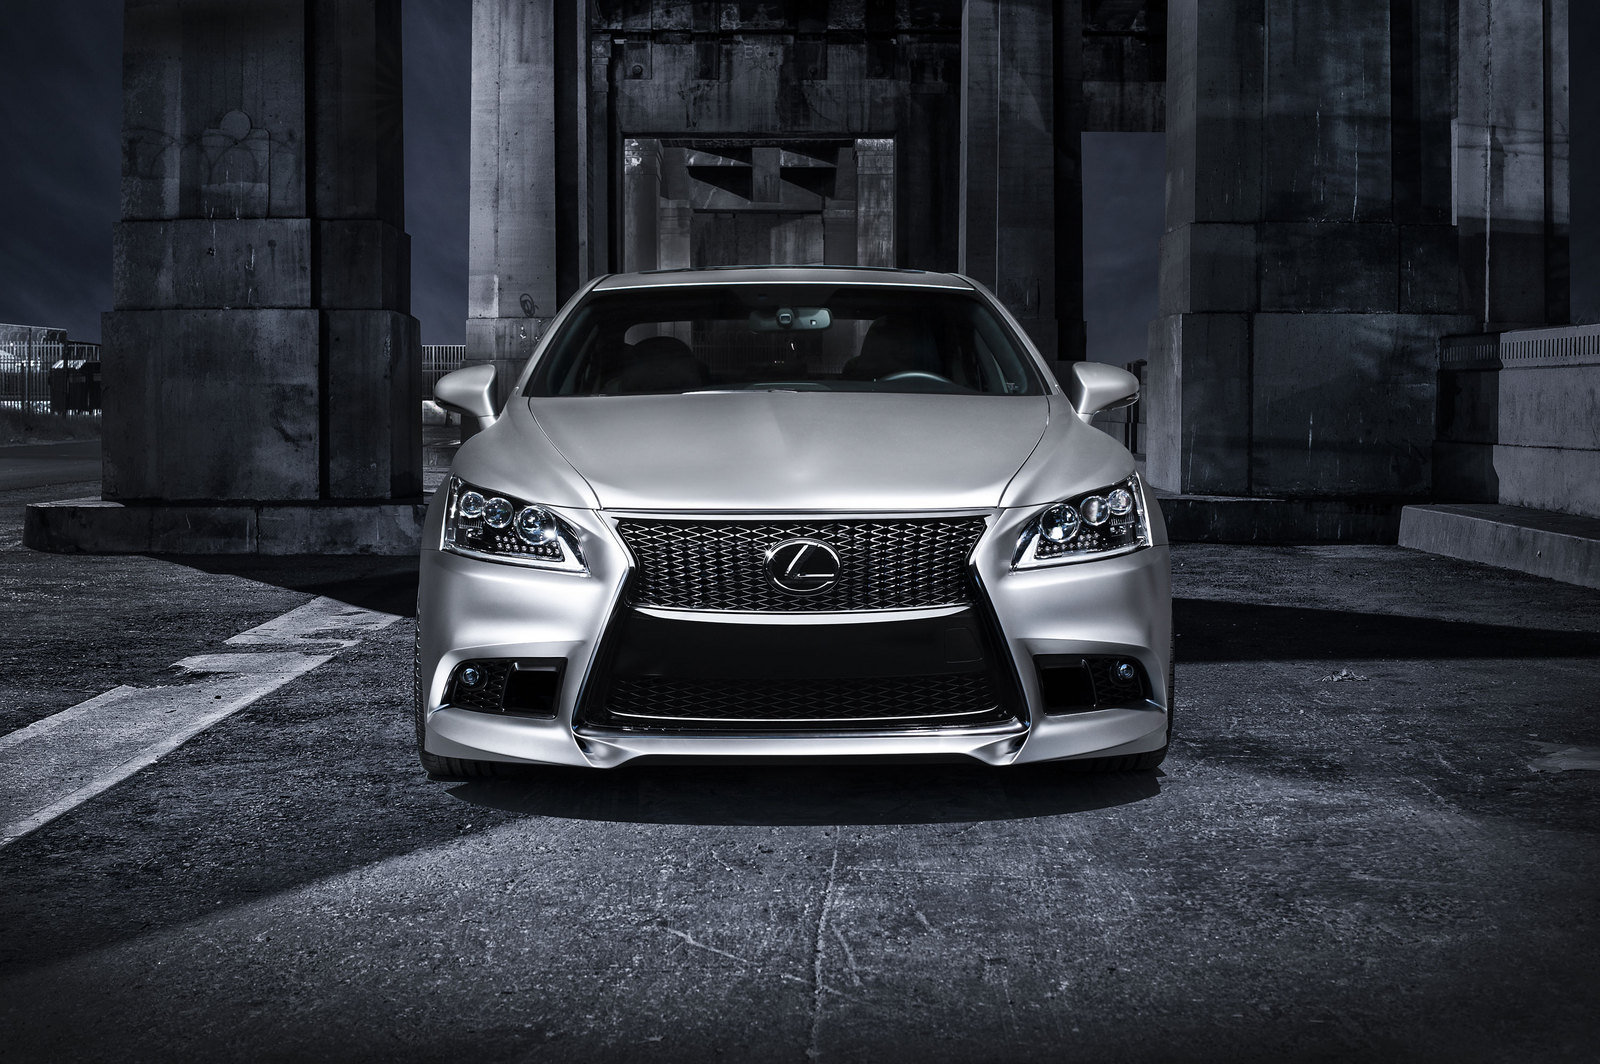 2013 lexus ls 460 f sport by five axis picture 481000 car review top speed. Black Bedroom Furniture Sets. Home Design Ideas